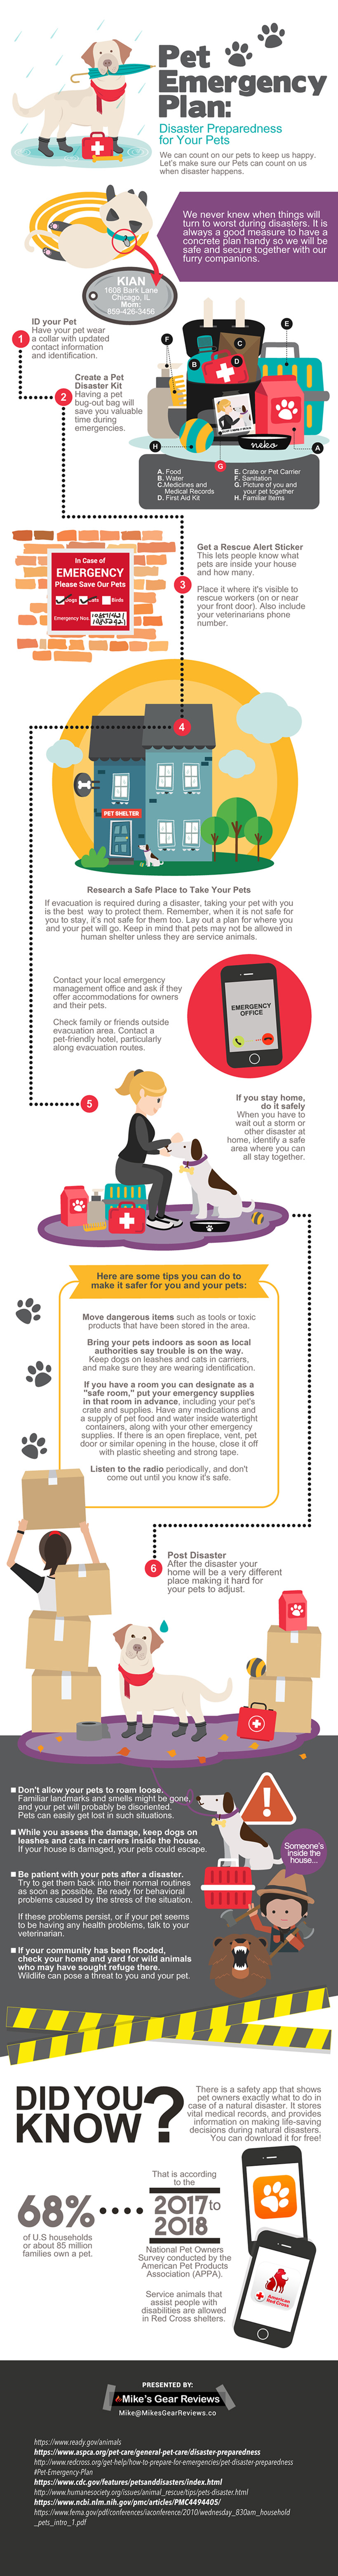 Pet Emergency Plan: Disaster Preparedness for Your Pets #Infographic #pets #disasterpreparedness #beprepared